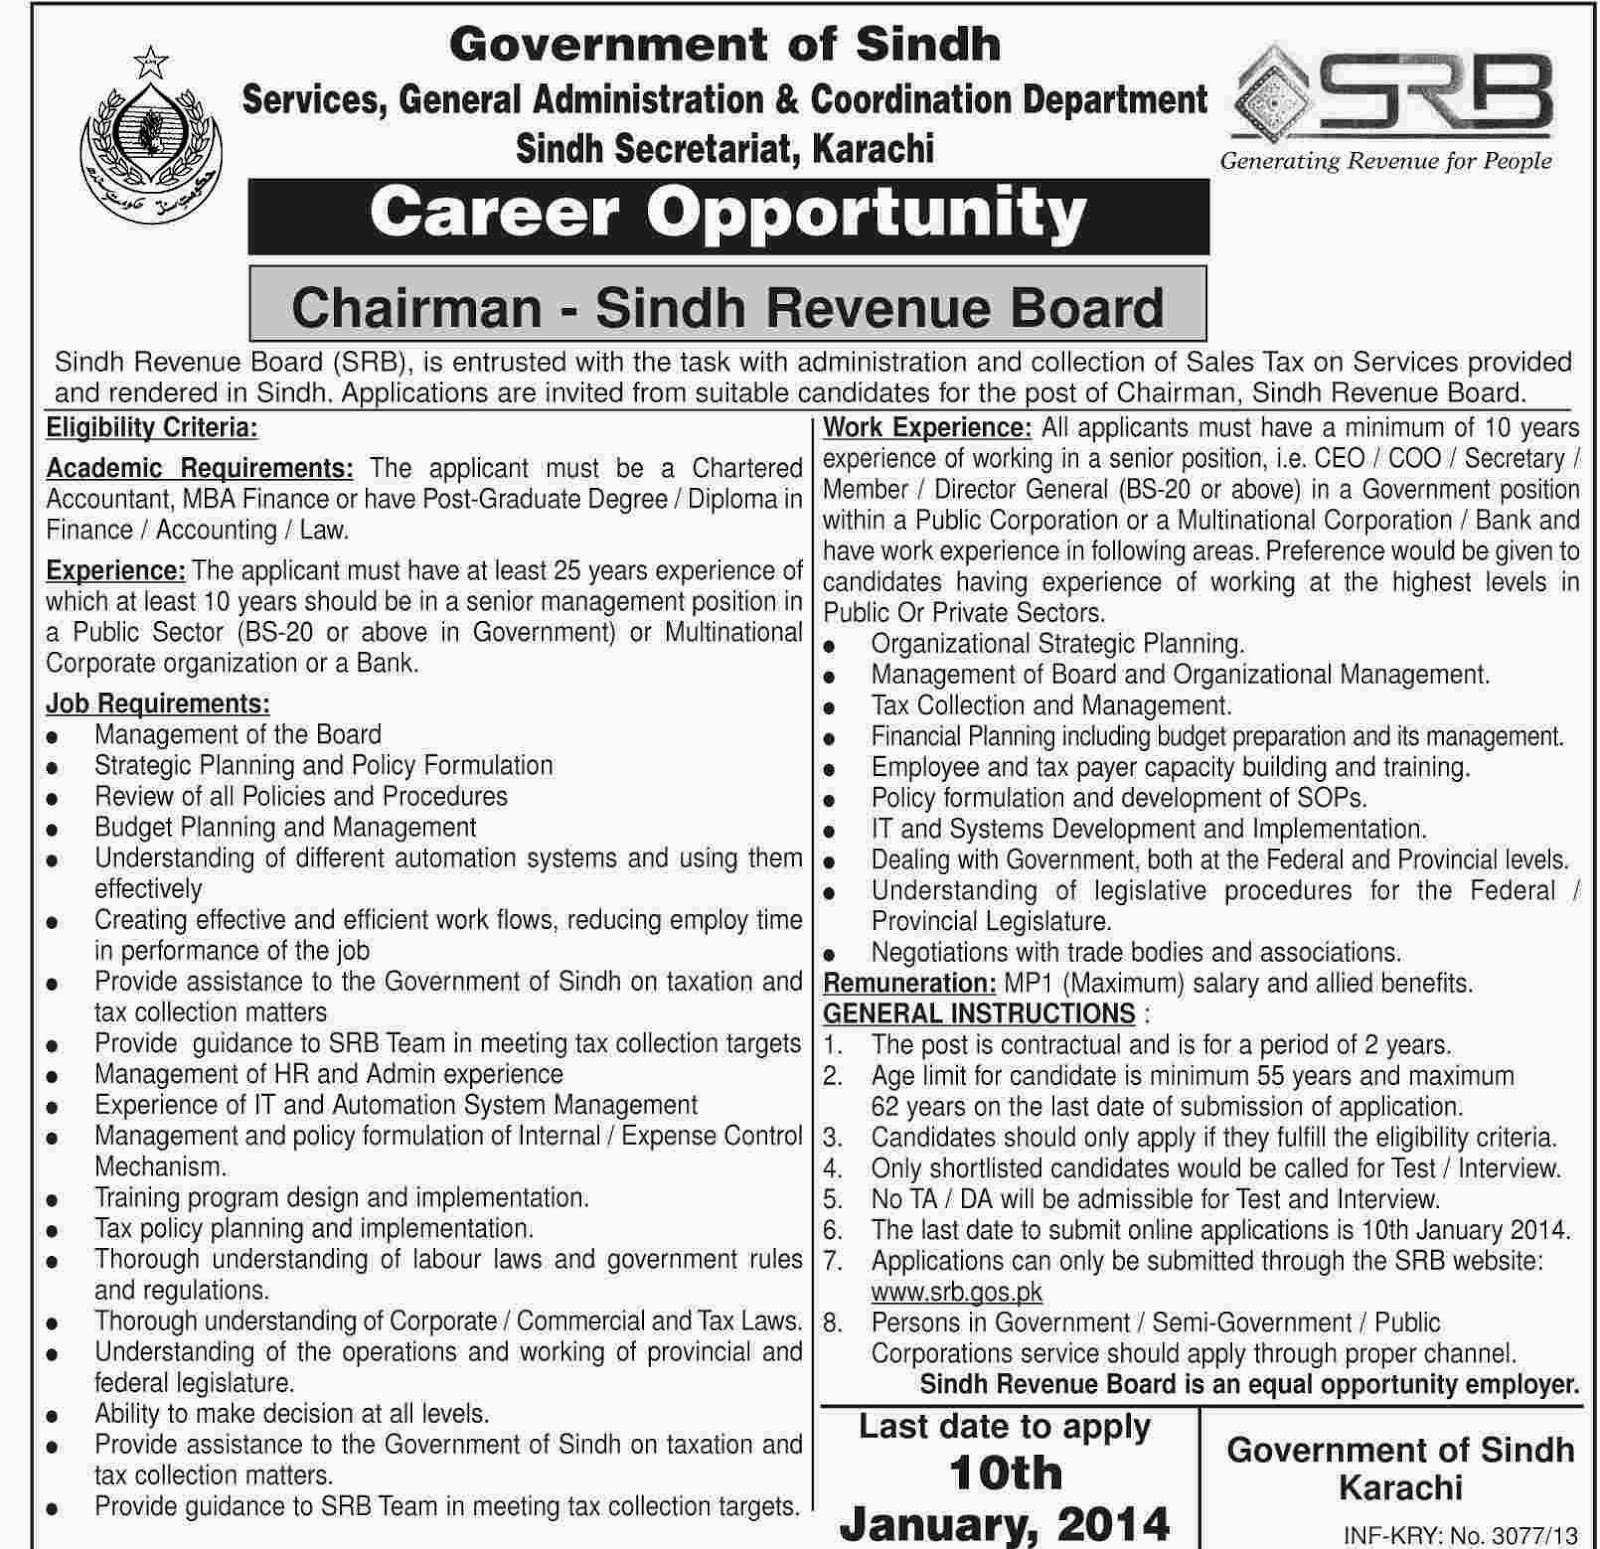 Required Chairman for Sindh Revenue Board, Karachi